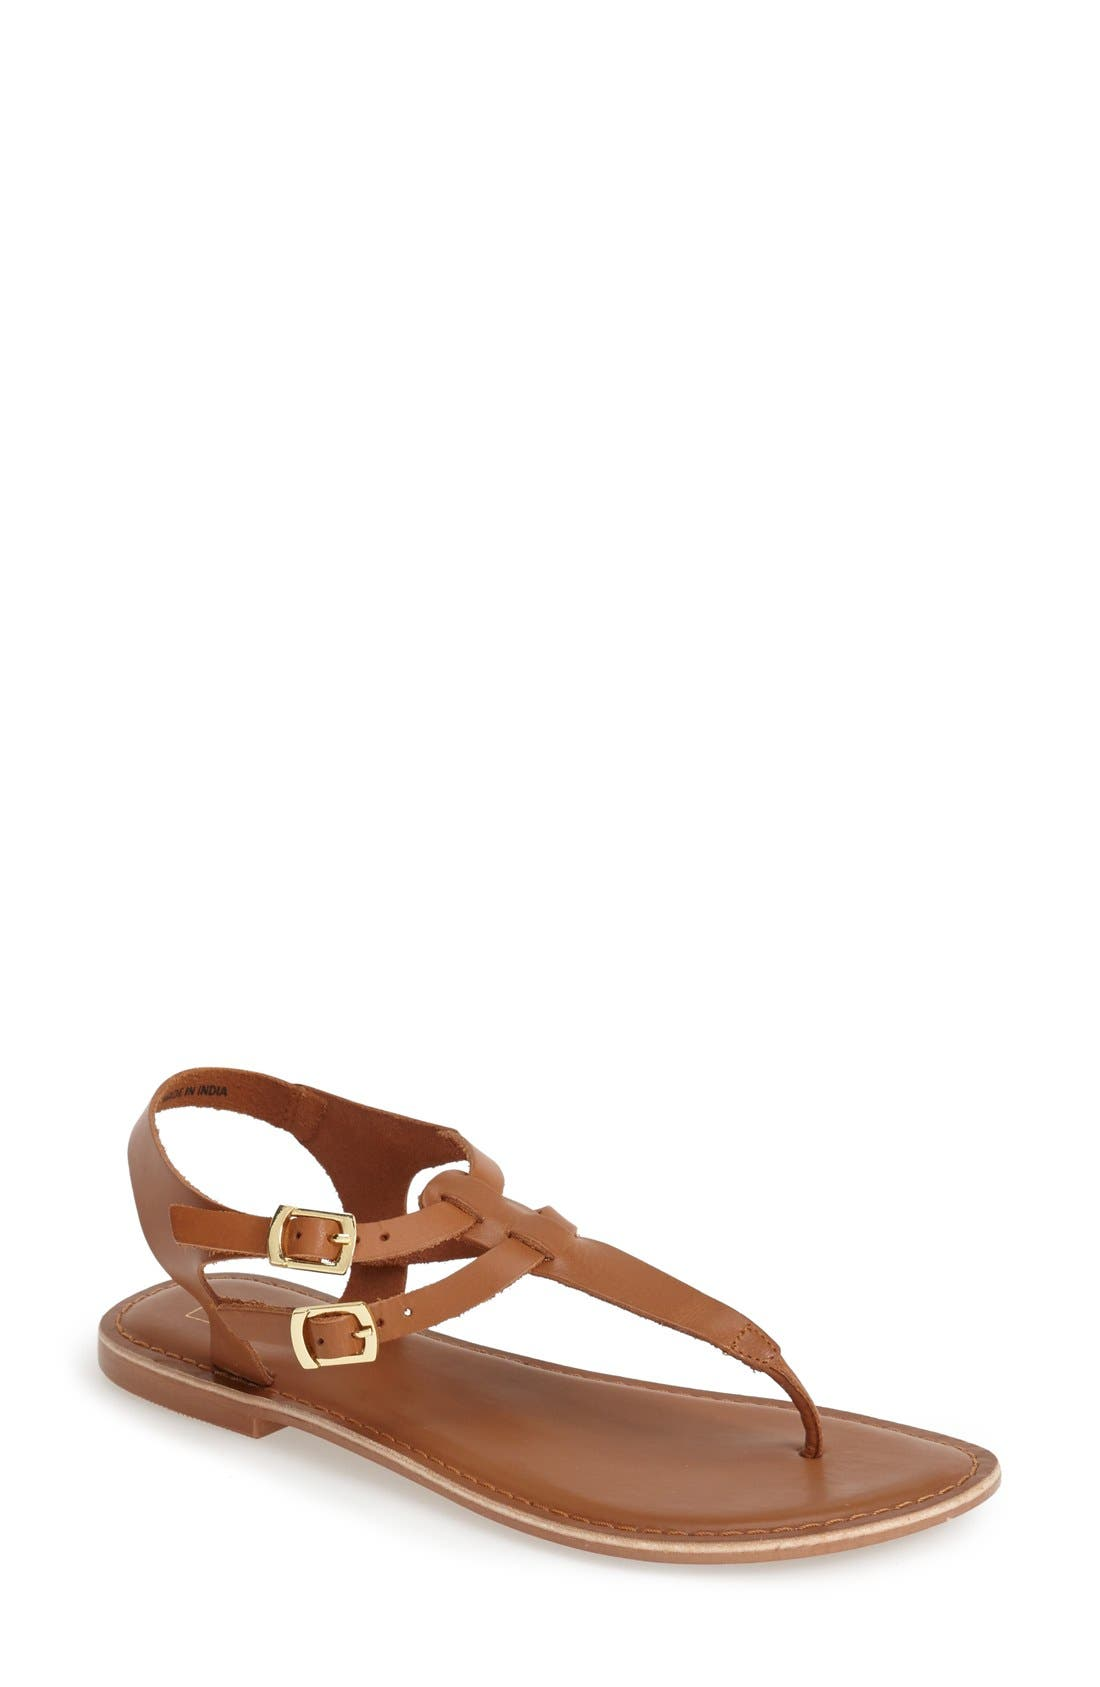 Main Image - Topshop 'Harbour' Strappy Leather Thong Sandal (Women)